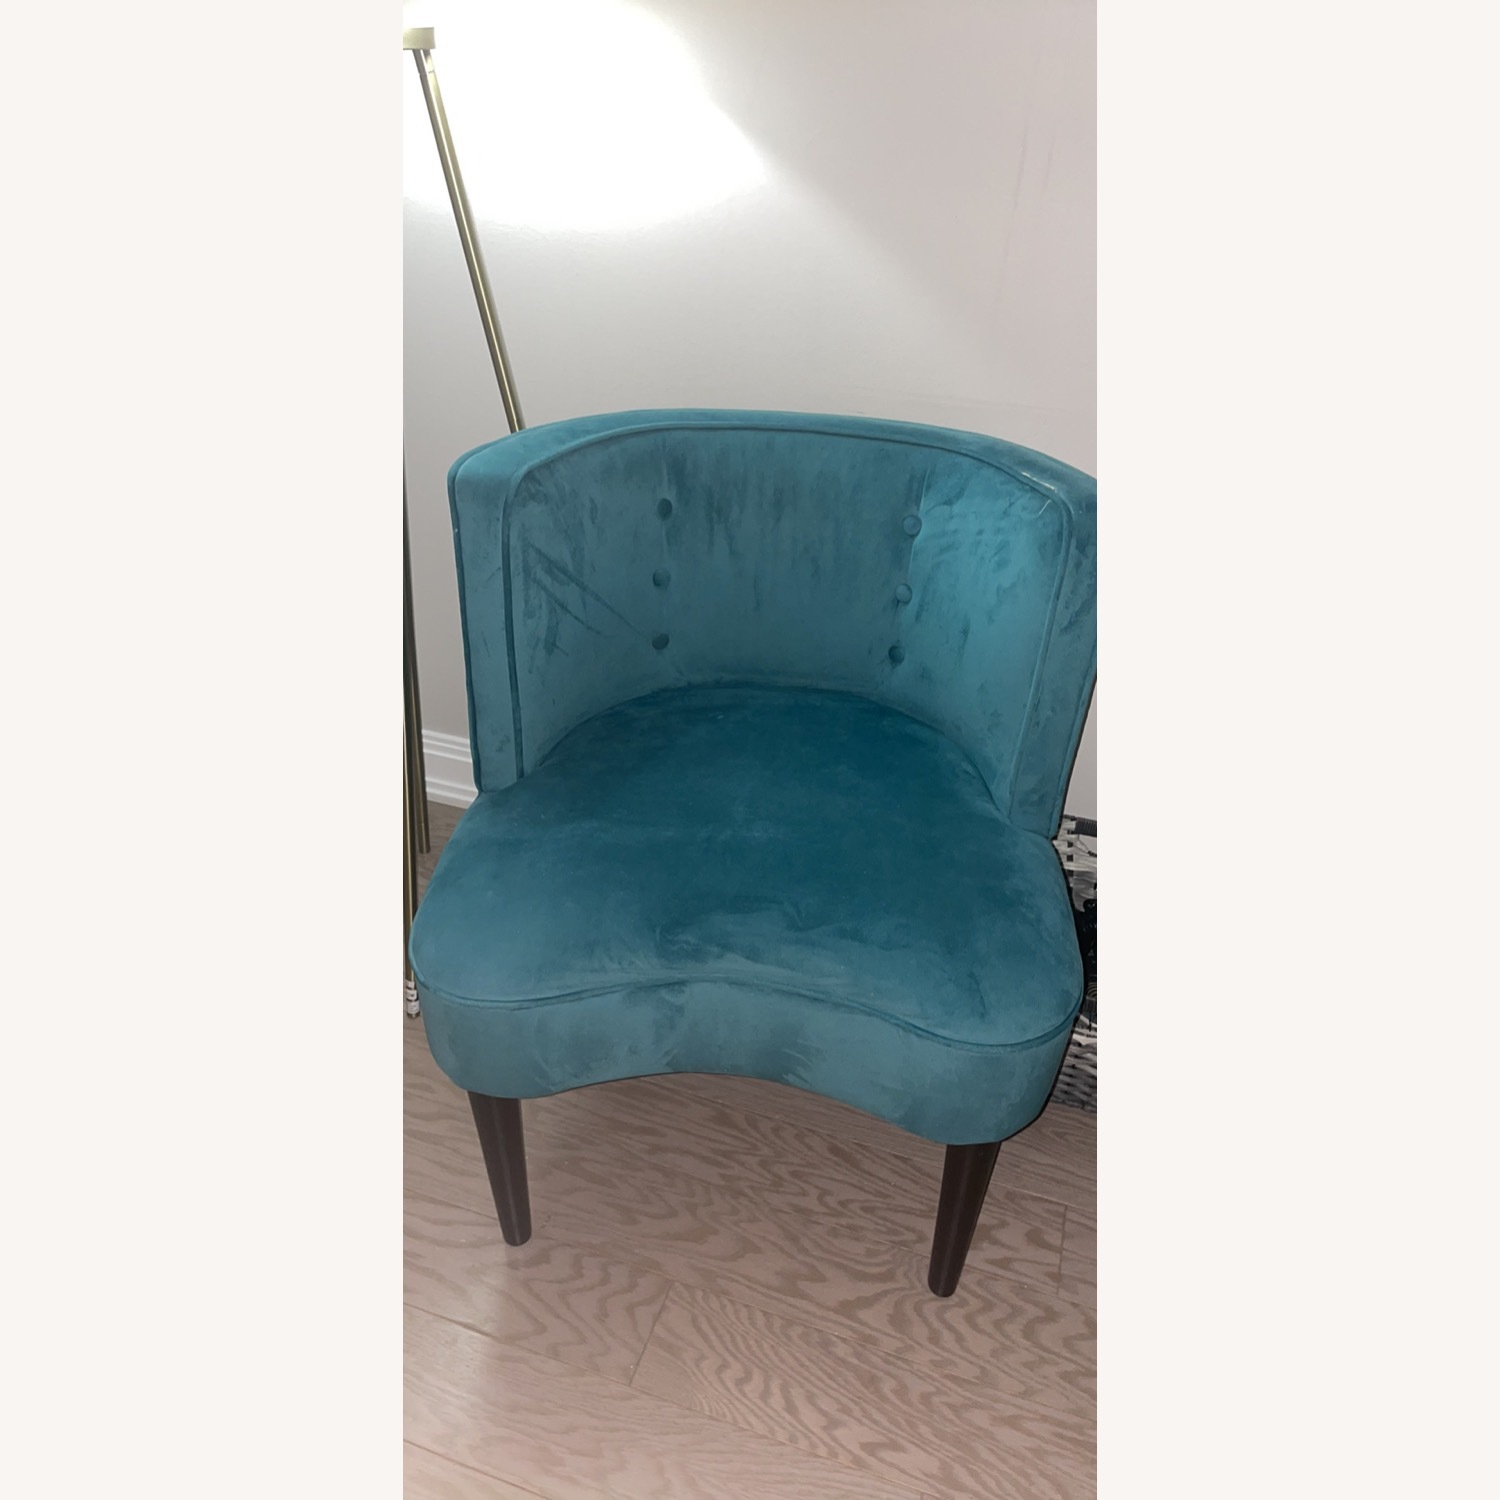 Target Teal Velvet Accent Chairs - image-4